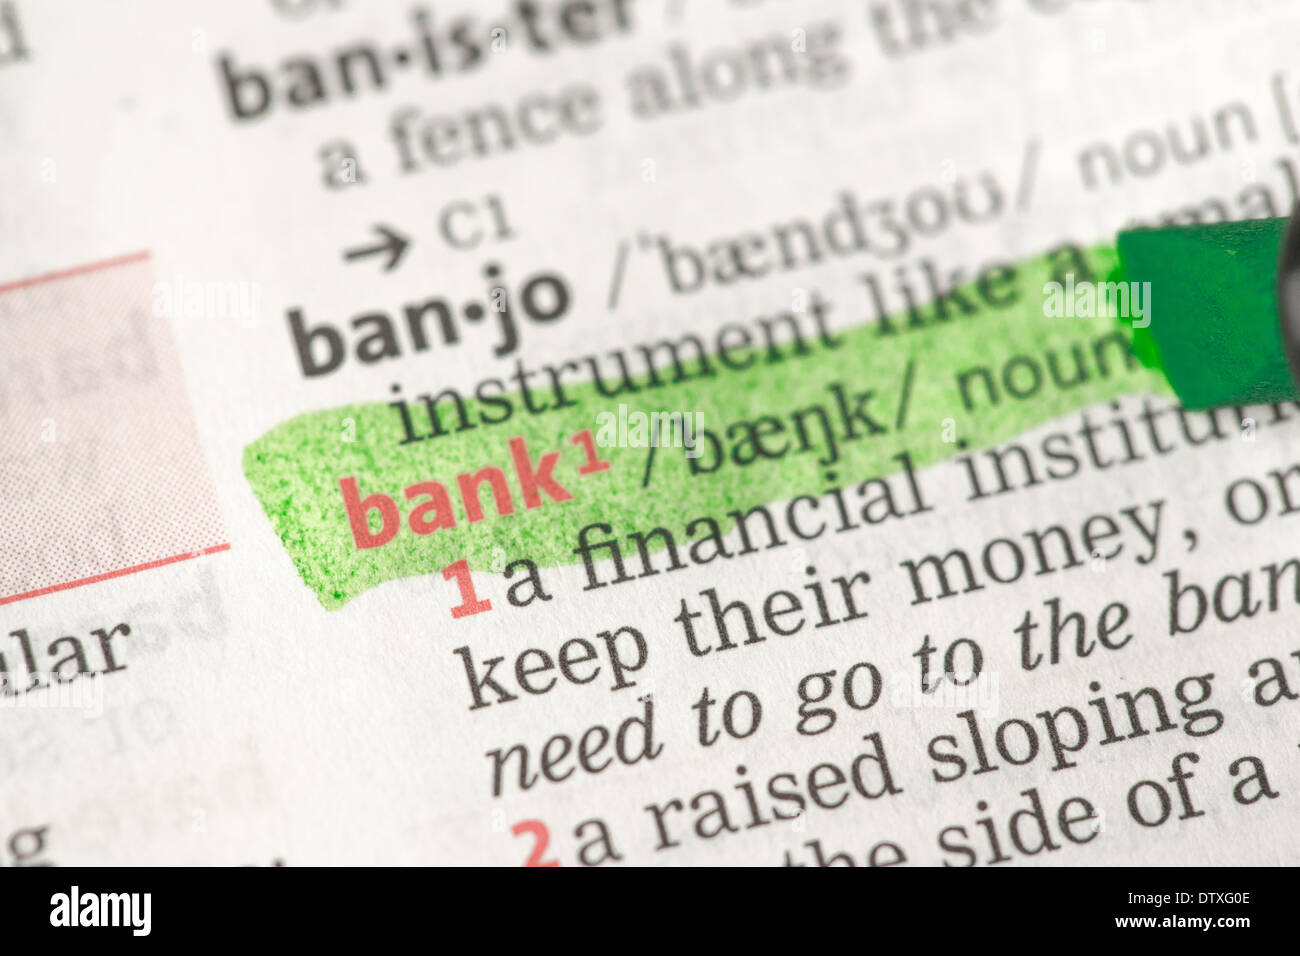 Bank definition highlighted in green Stock Photo: 66966158 - Alamy